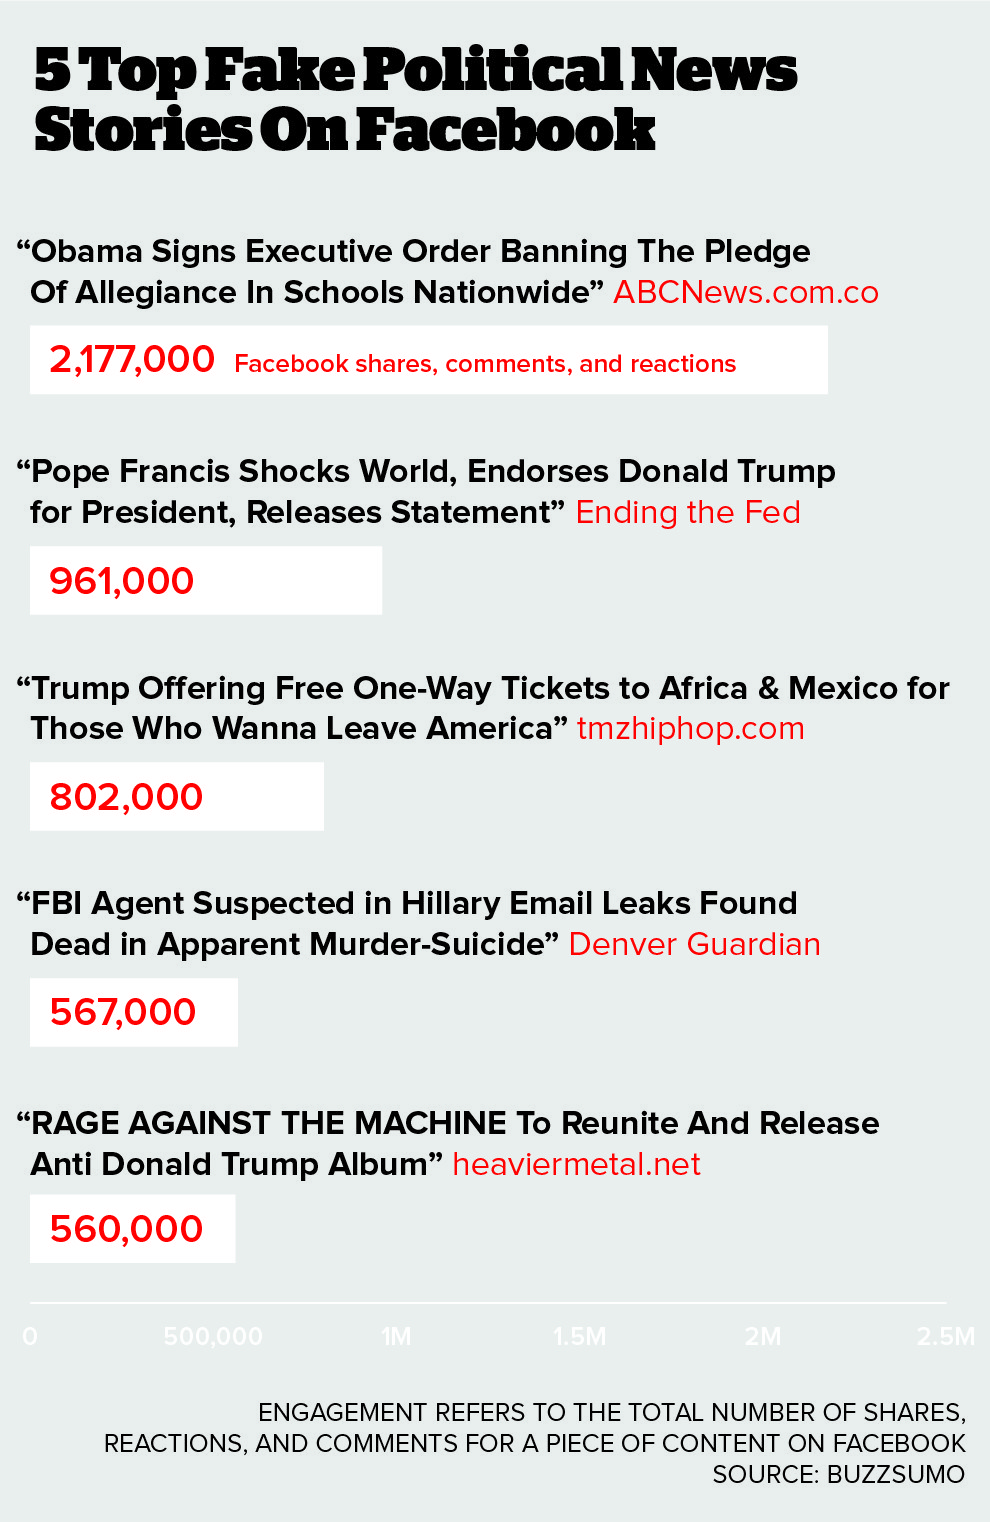 Top 5 of the Top 50 Political Fake News stories of 2015, according to BuzzFeed